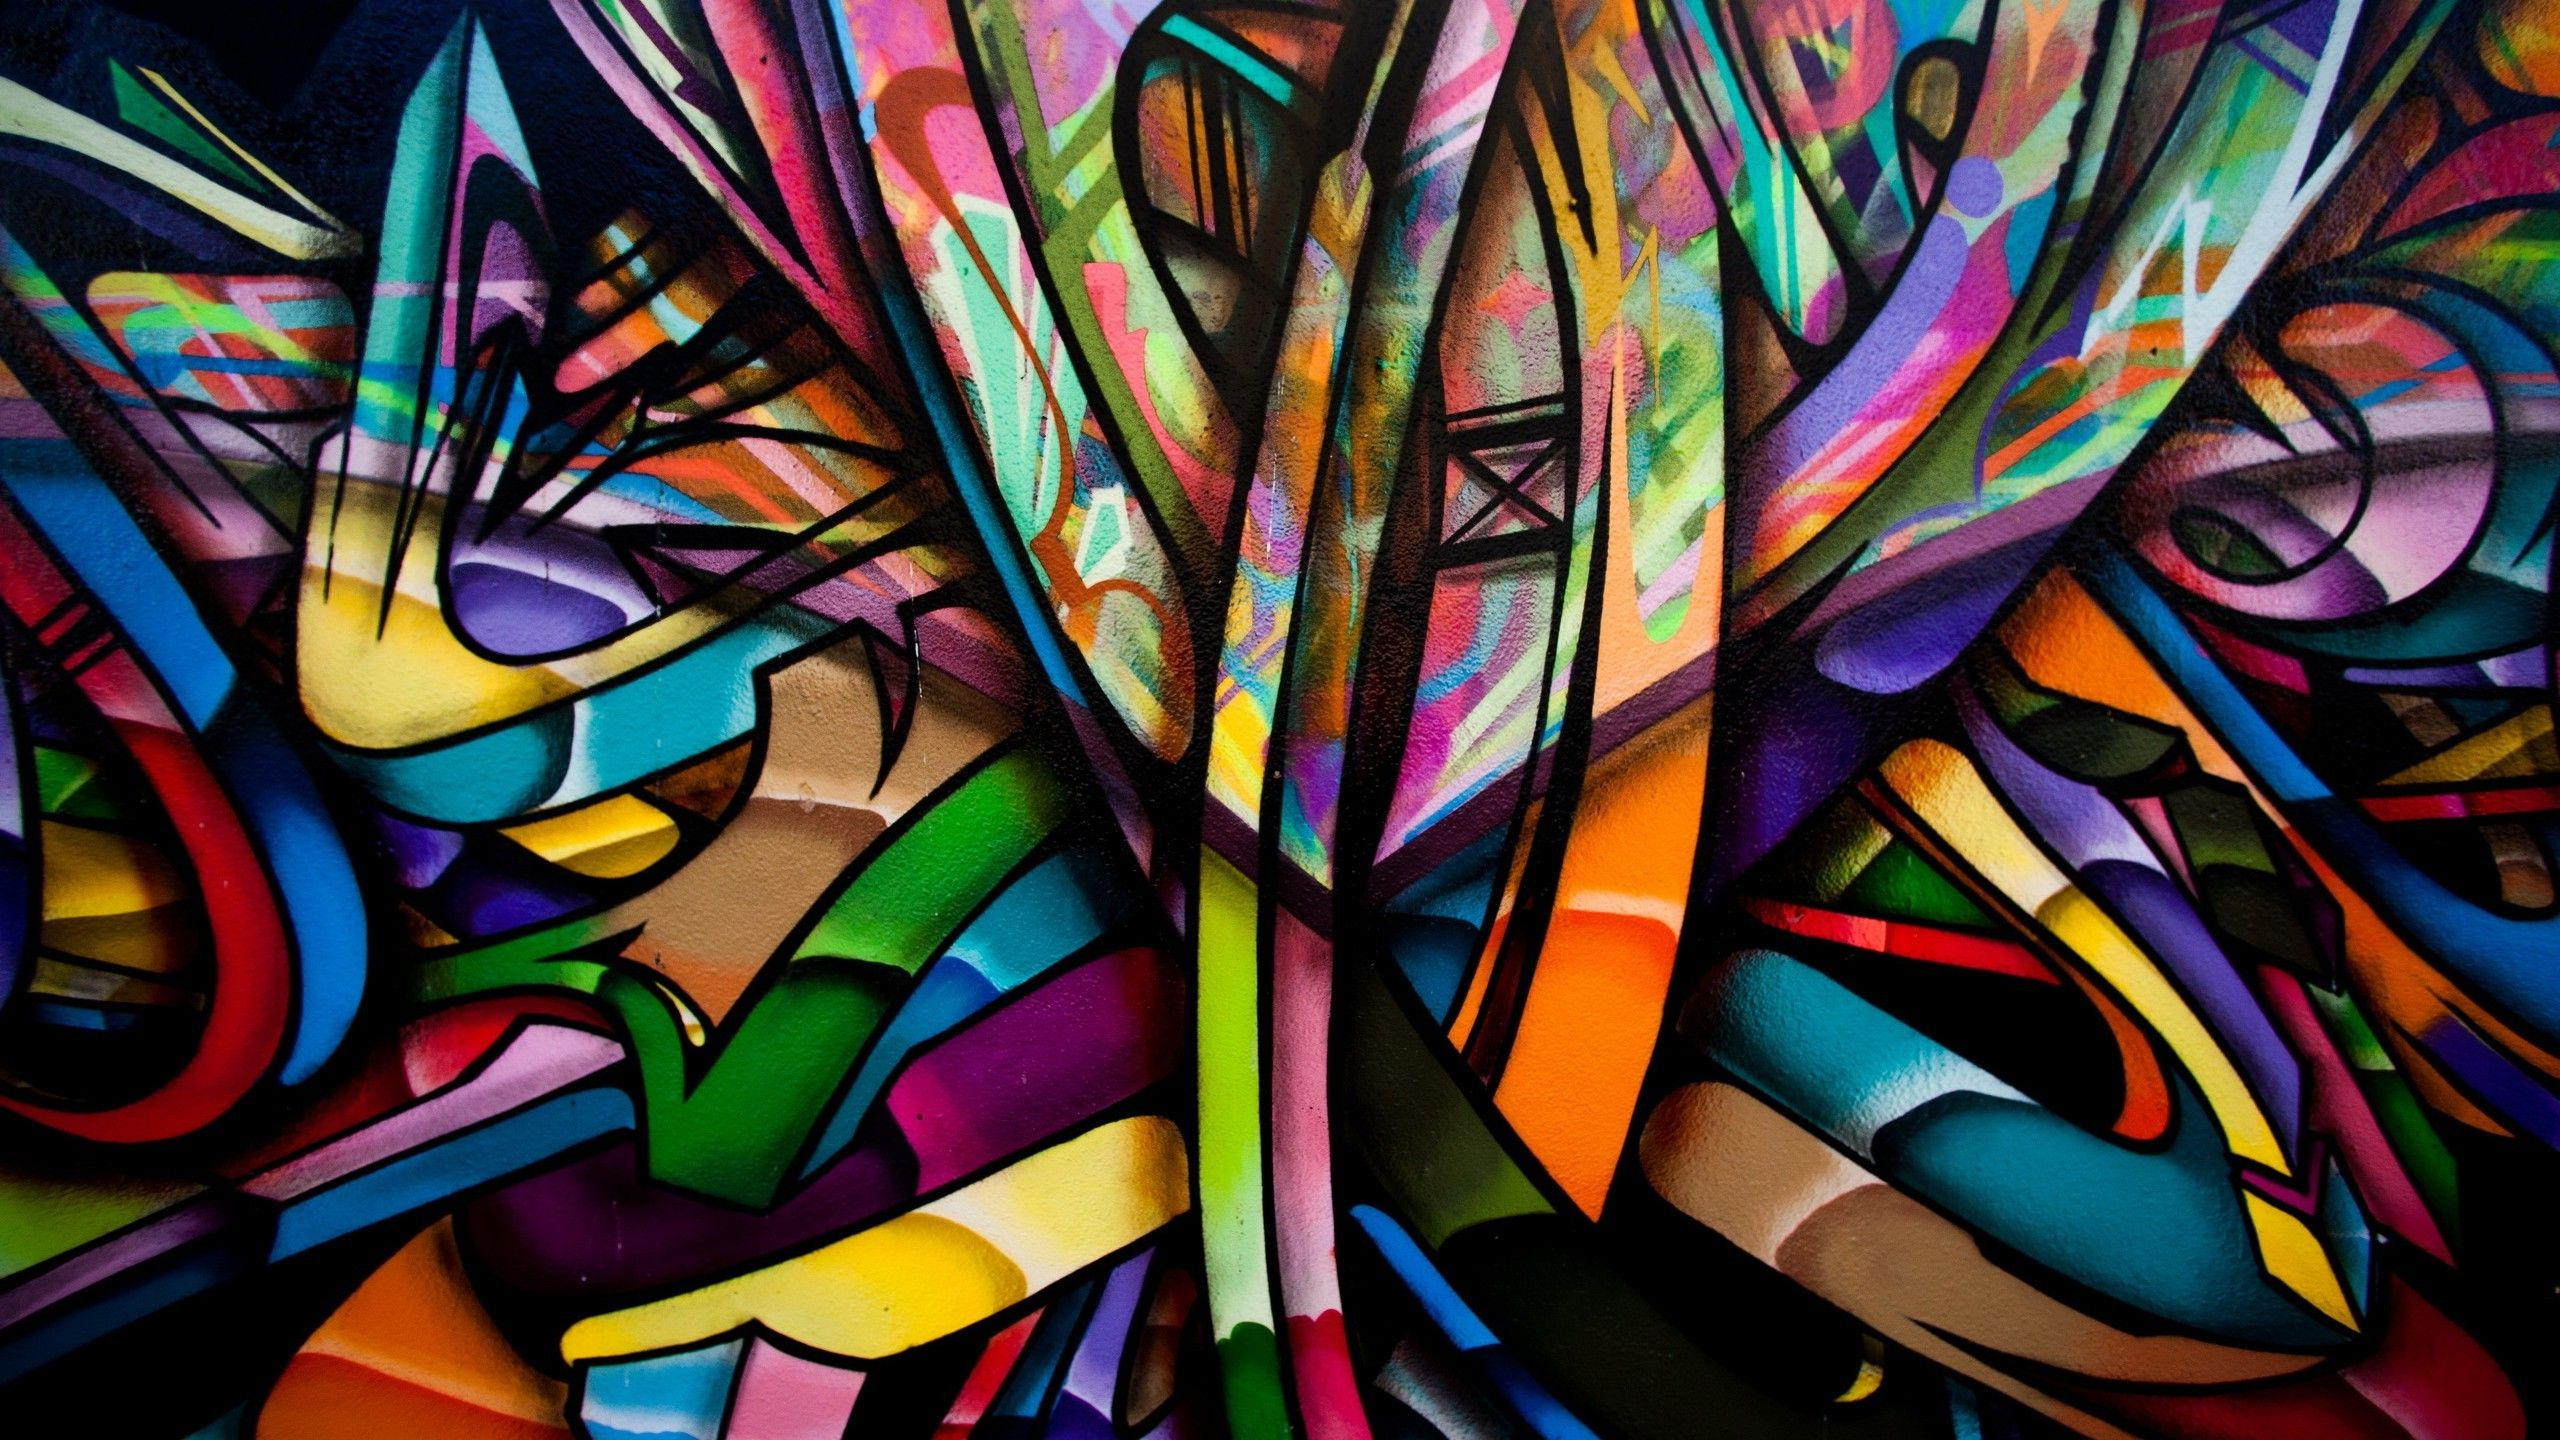 Abstract Colorful Graffiti Walls Artwork Painting Wallpapers Hd Gambar Grafit Lukisan Abstrak Seni Kanvas